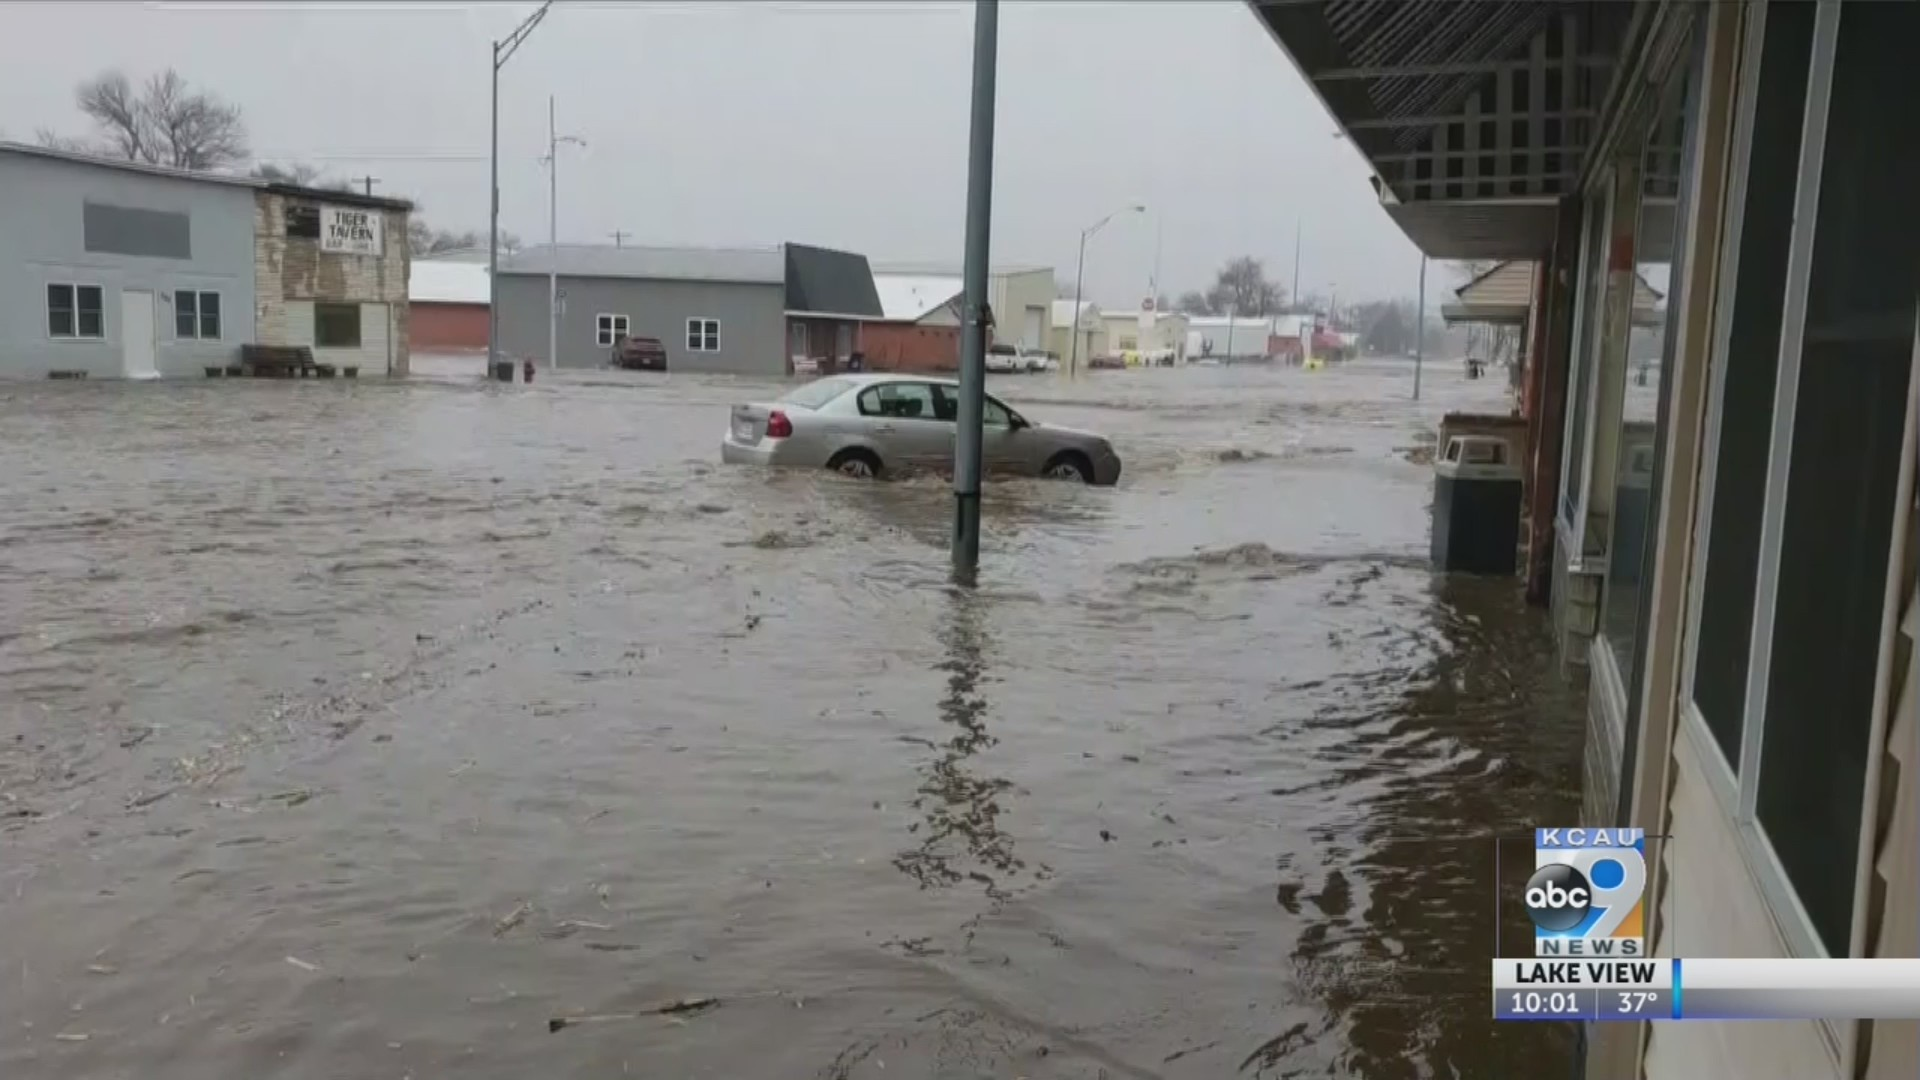 Widespread flooding in Pierce County